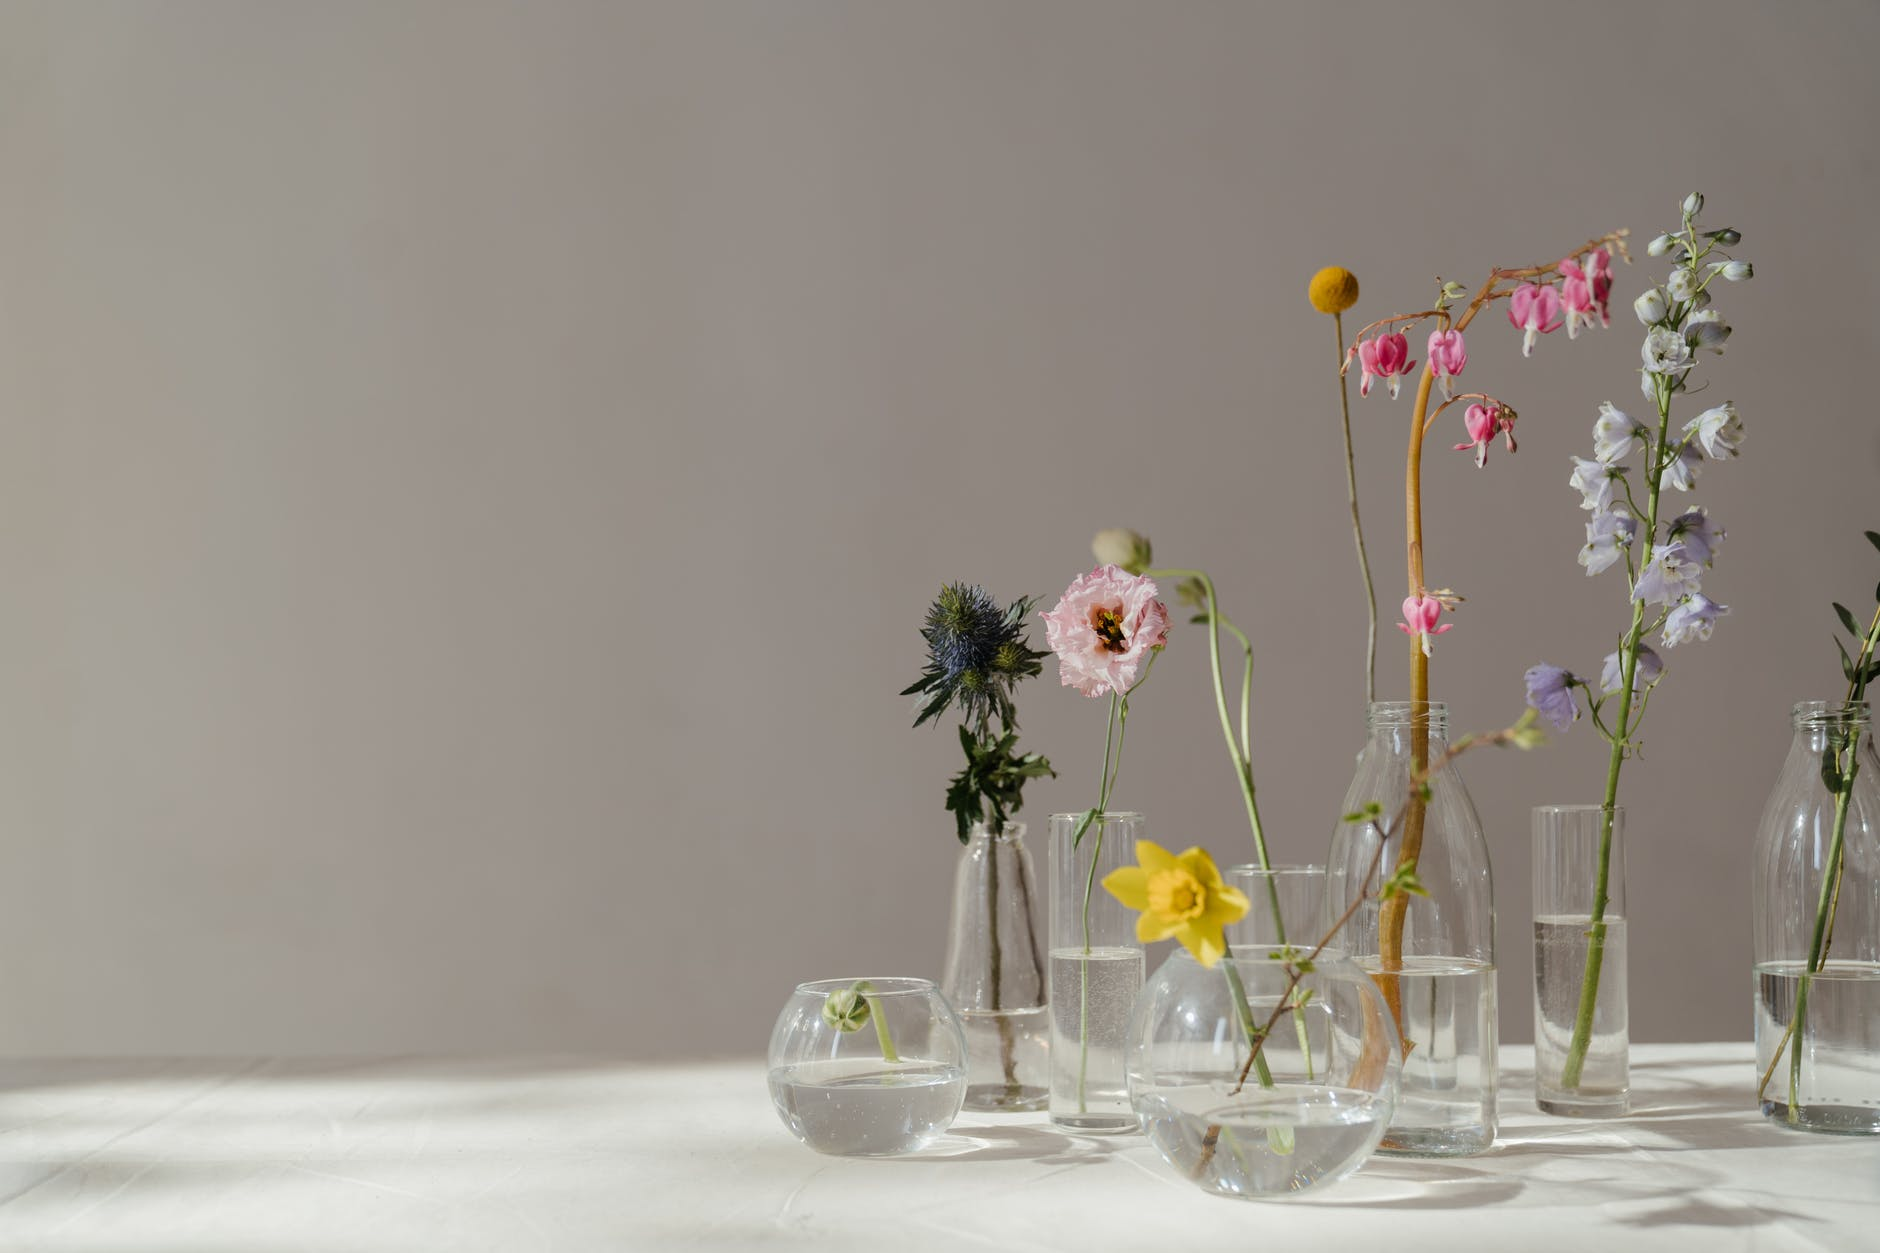 photo of flowers in glass vase with water